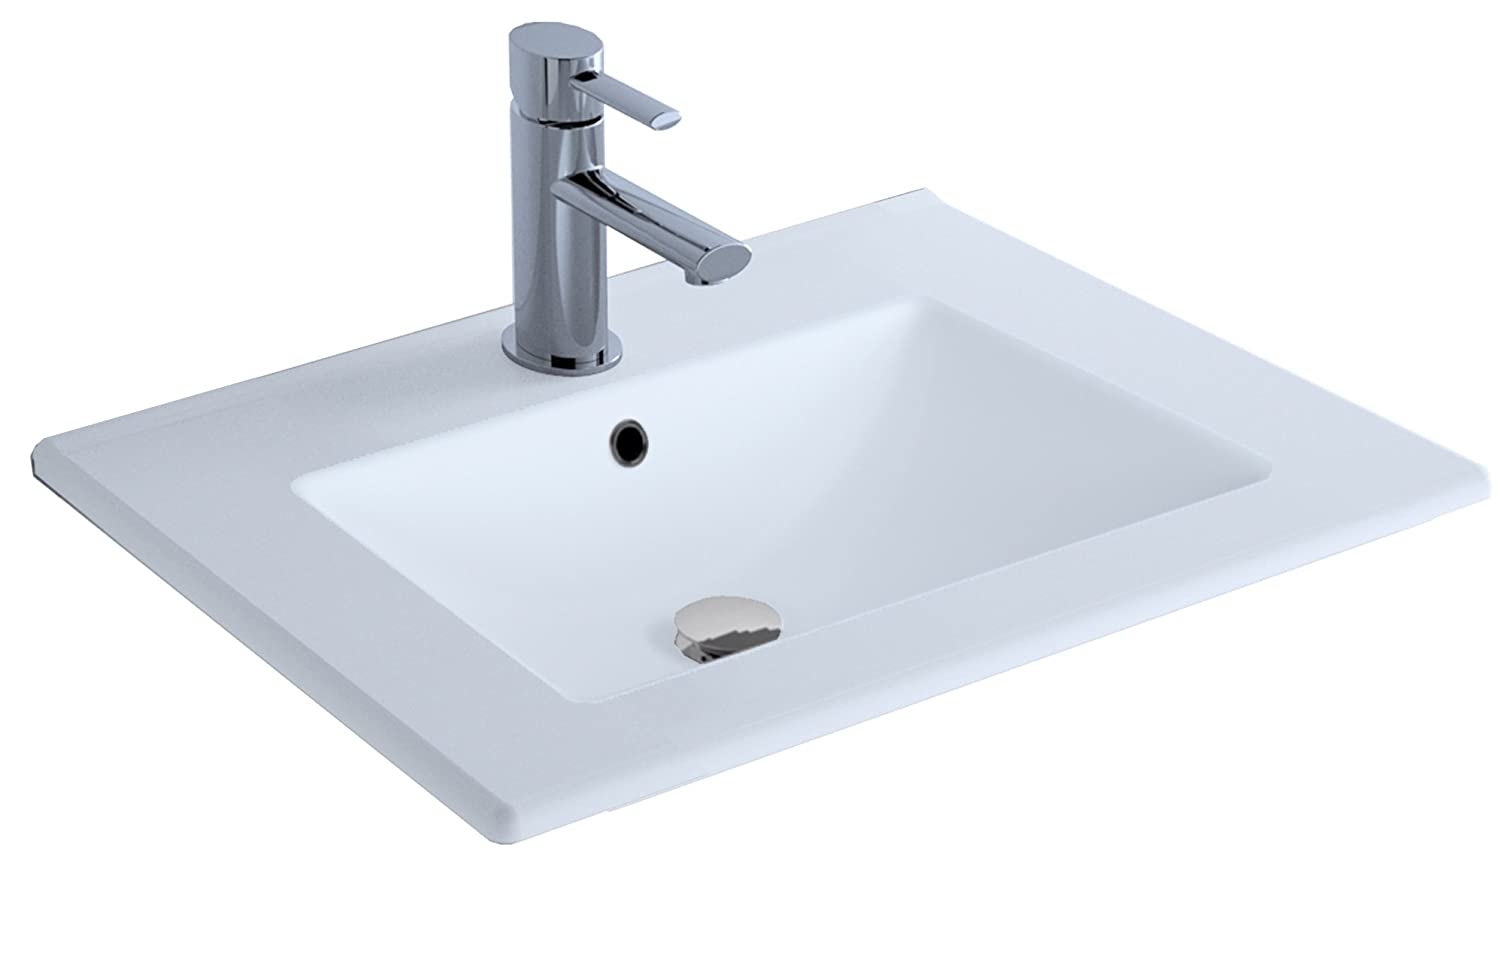 Cygnus Bath - 70 cm ceramic washbasin, extra-flat 1100116191